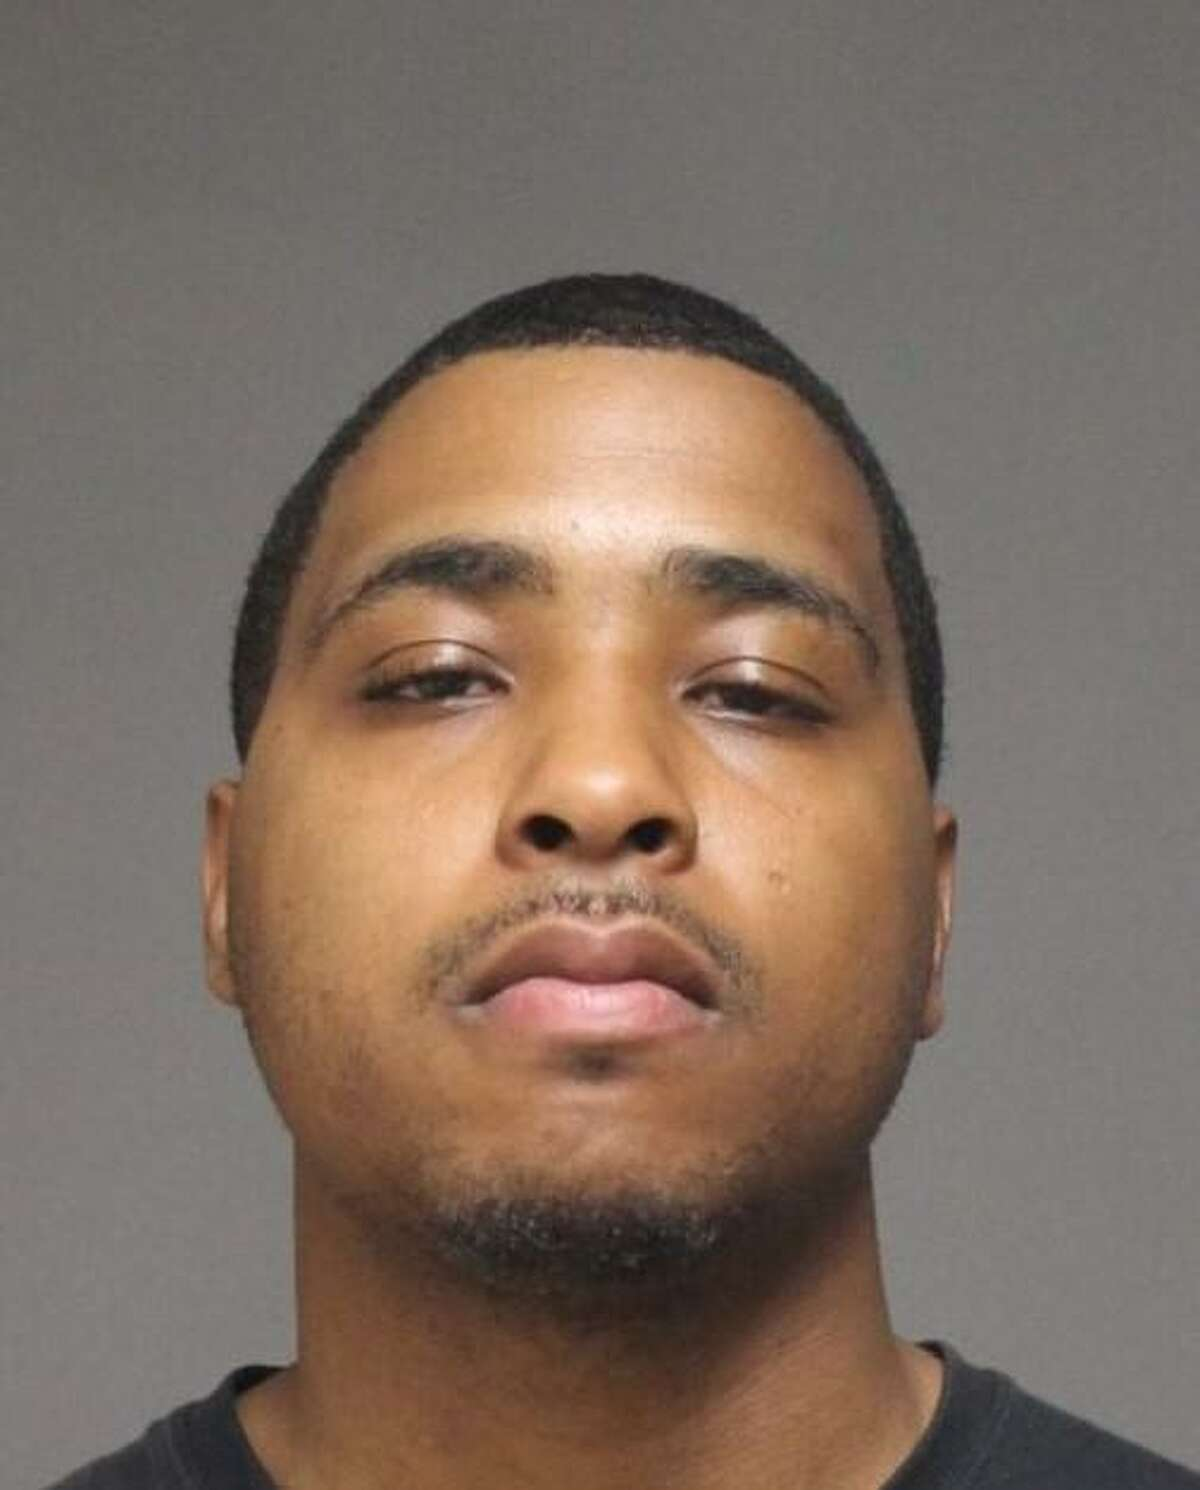 Fairfield police say Joshua Shamar Huff, a 28-year-old Bridgeport resident, was arrested for allegedly threatening and stalking a woman and her family.